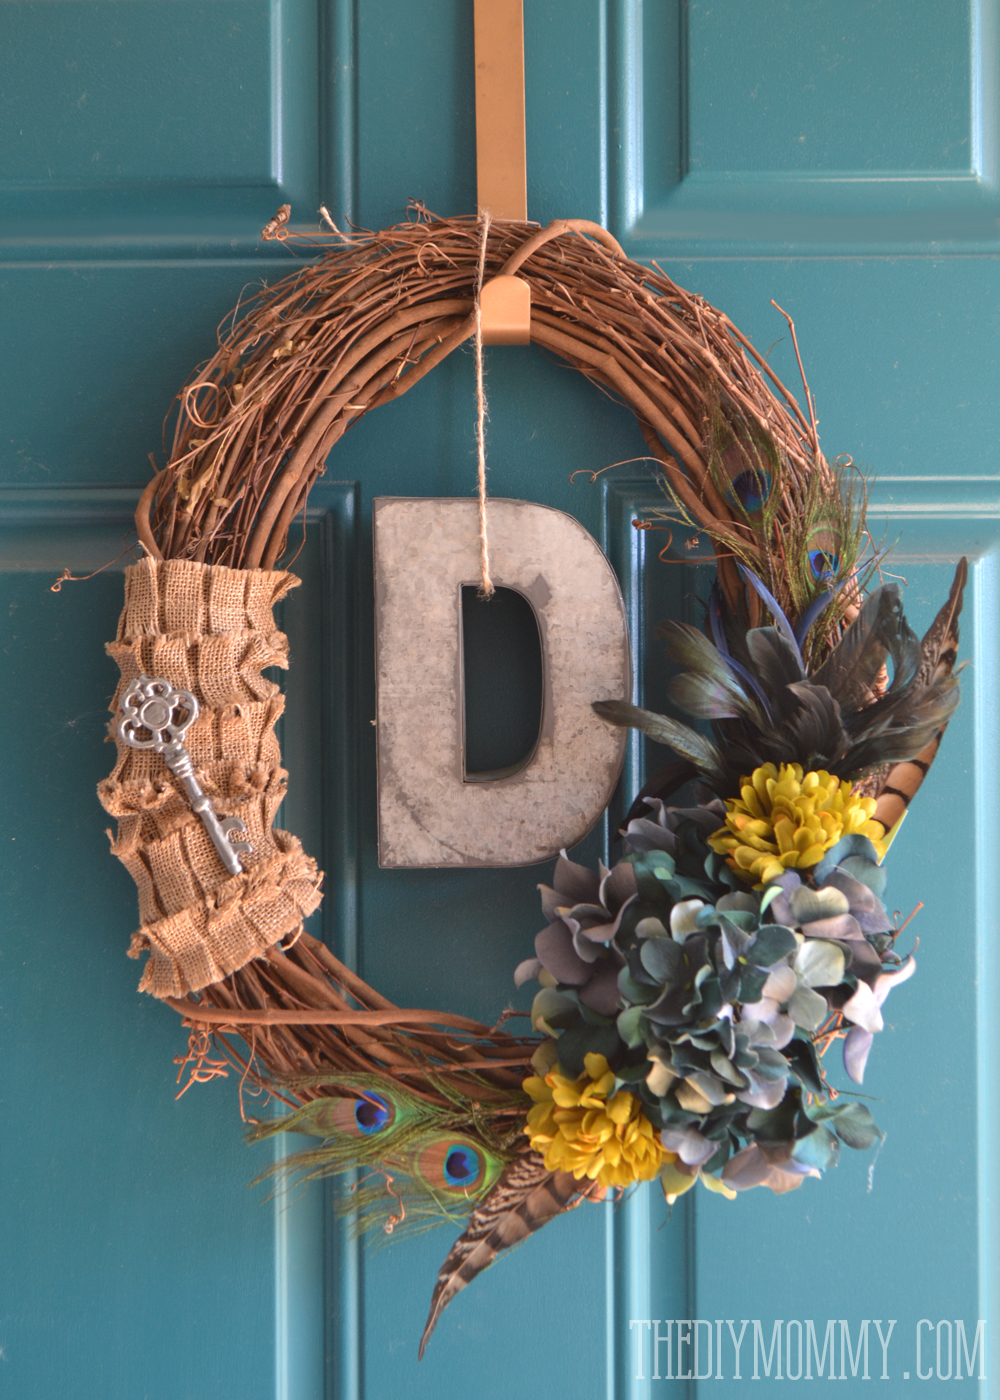 Fall Wreath Ideas Part - 44: A Vintage Inspired Teal Fall Wreath With Burlap, Feathers, Hydrangeas, And  A Monogram